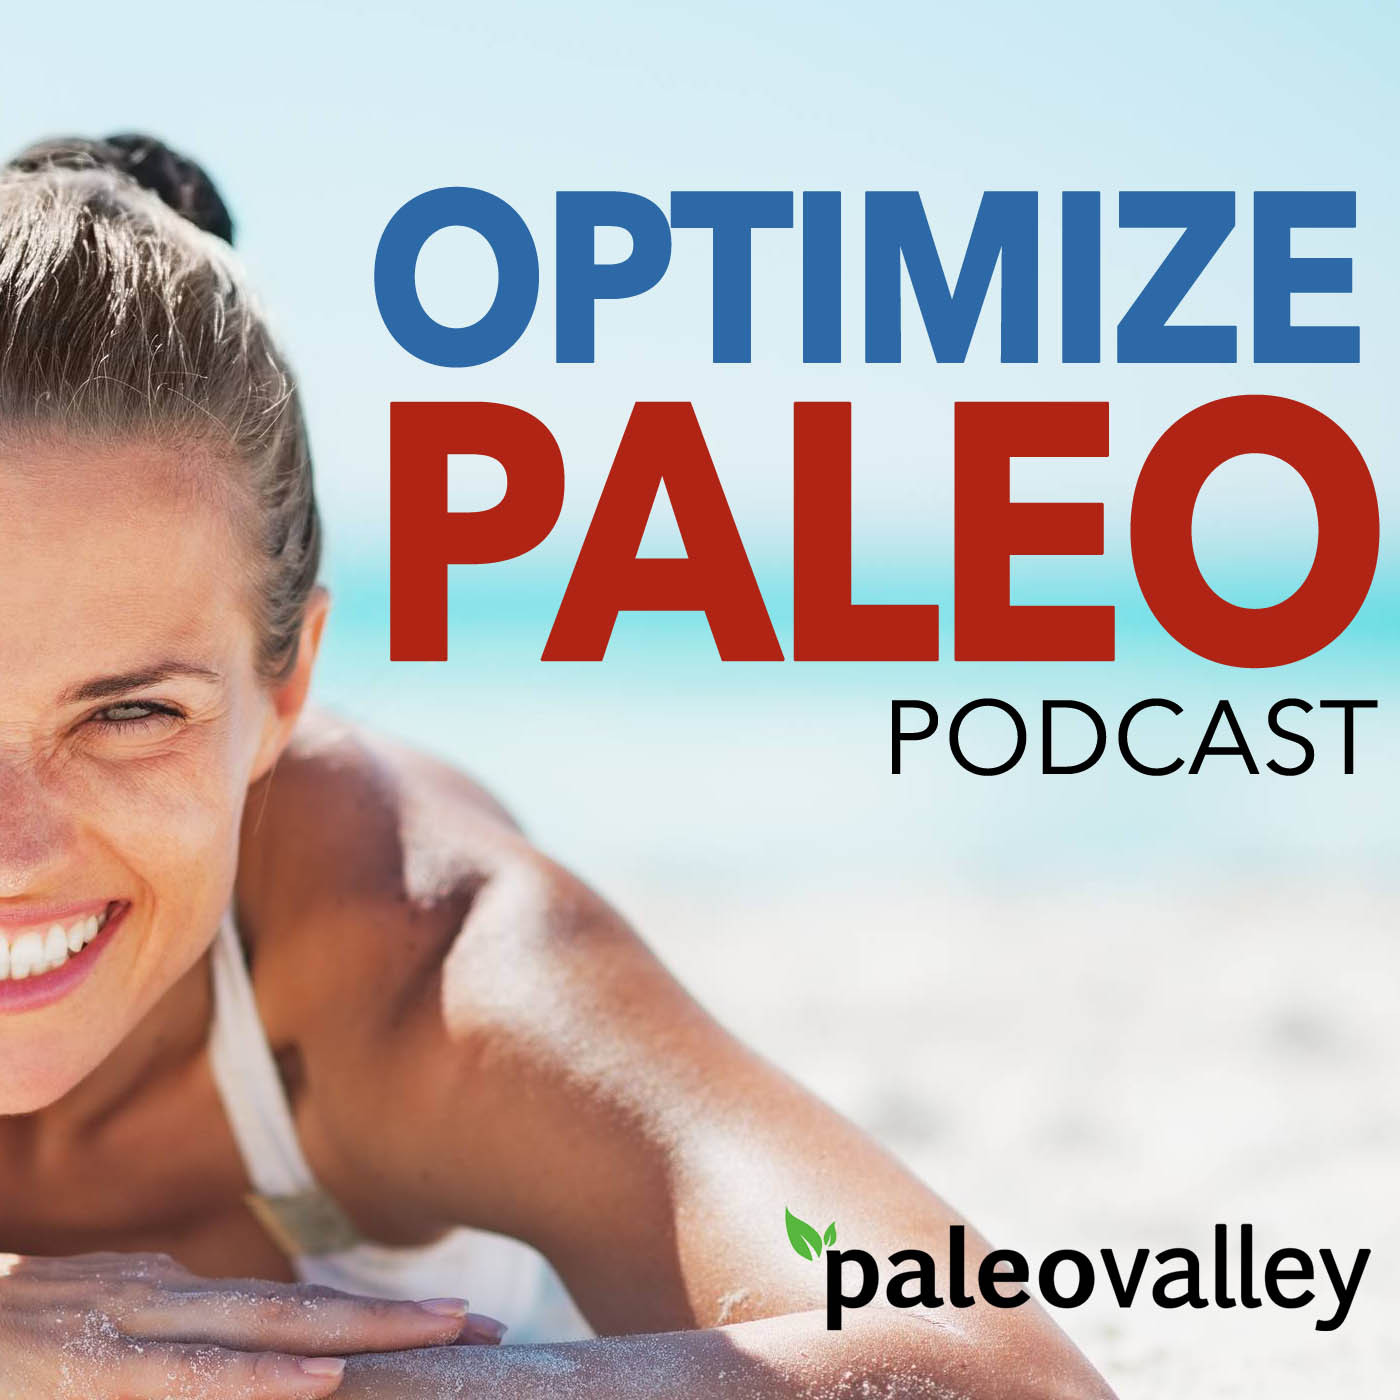 Optimize Paleo by Paleovalley show art